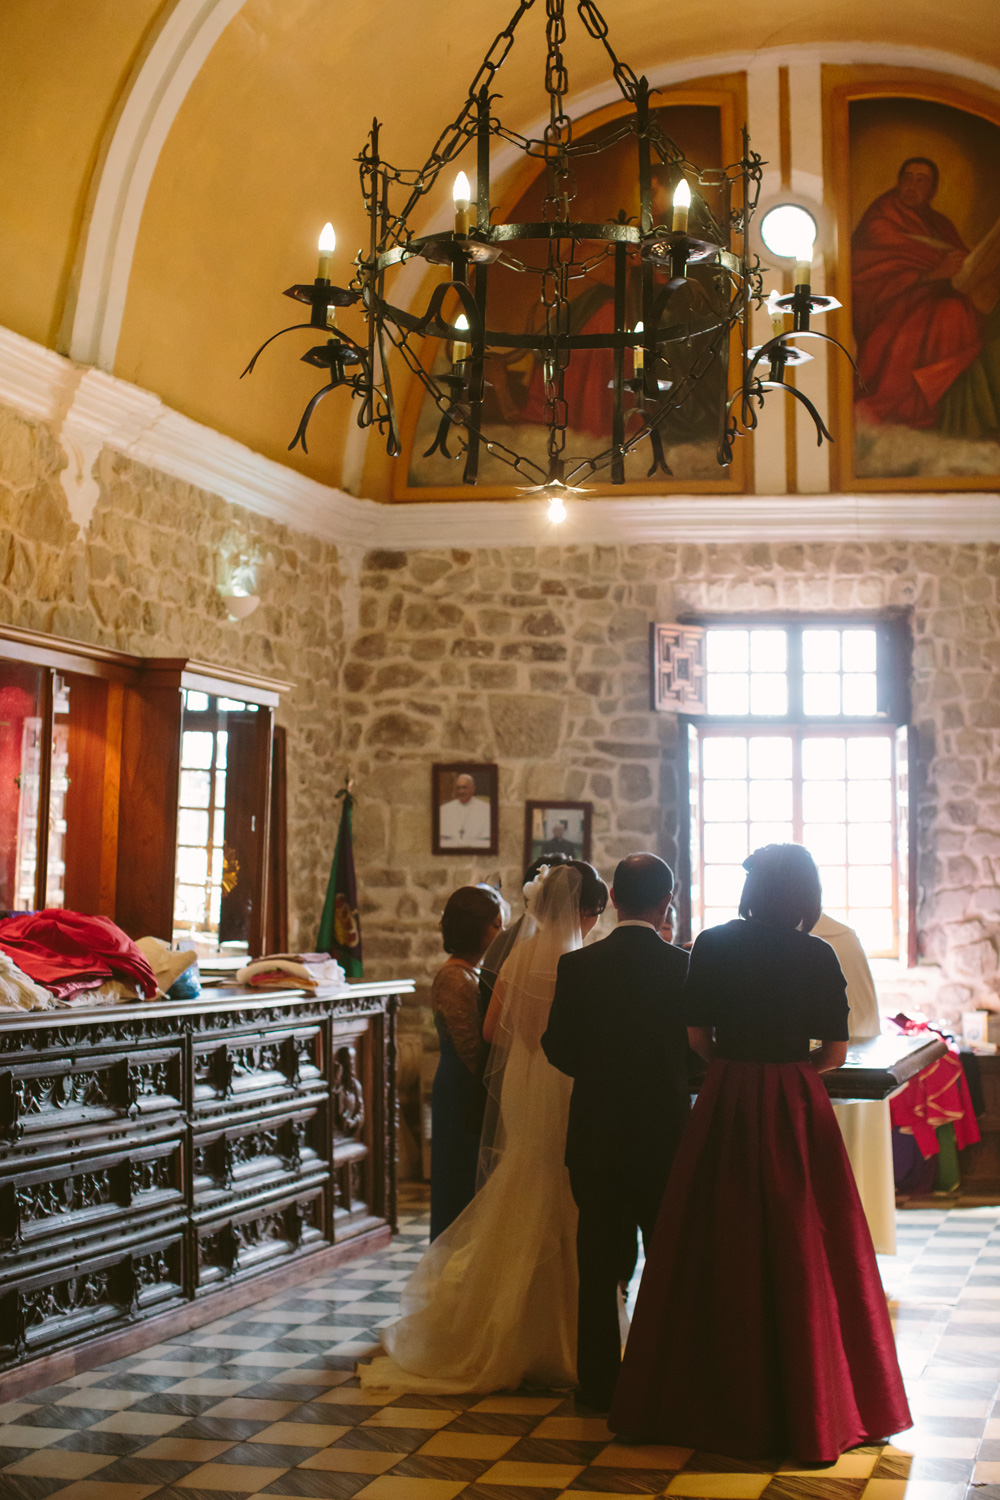 melissa_sung_photography_destination_wedding_spain_andalusia_olive_groves028.jpg